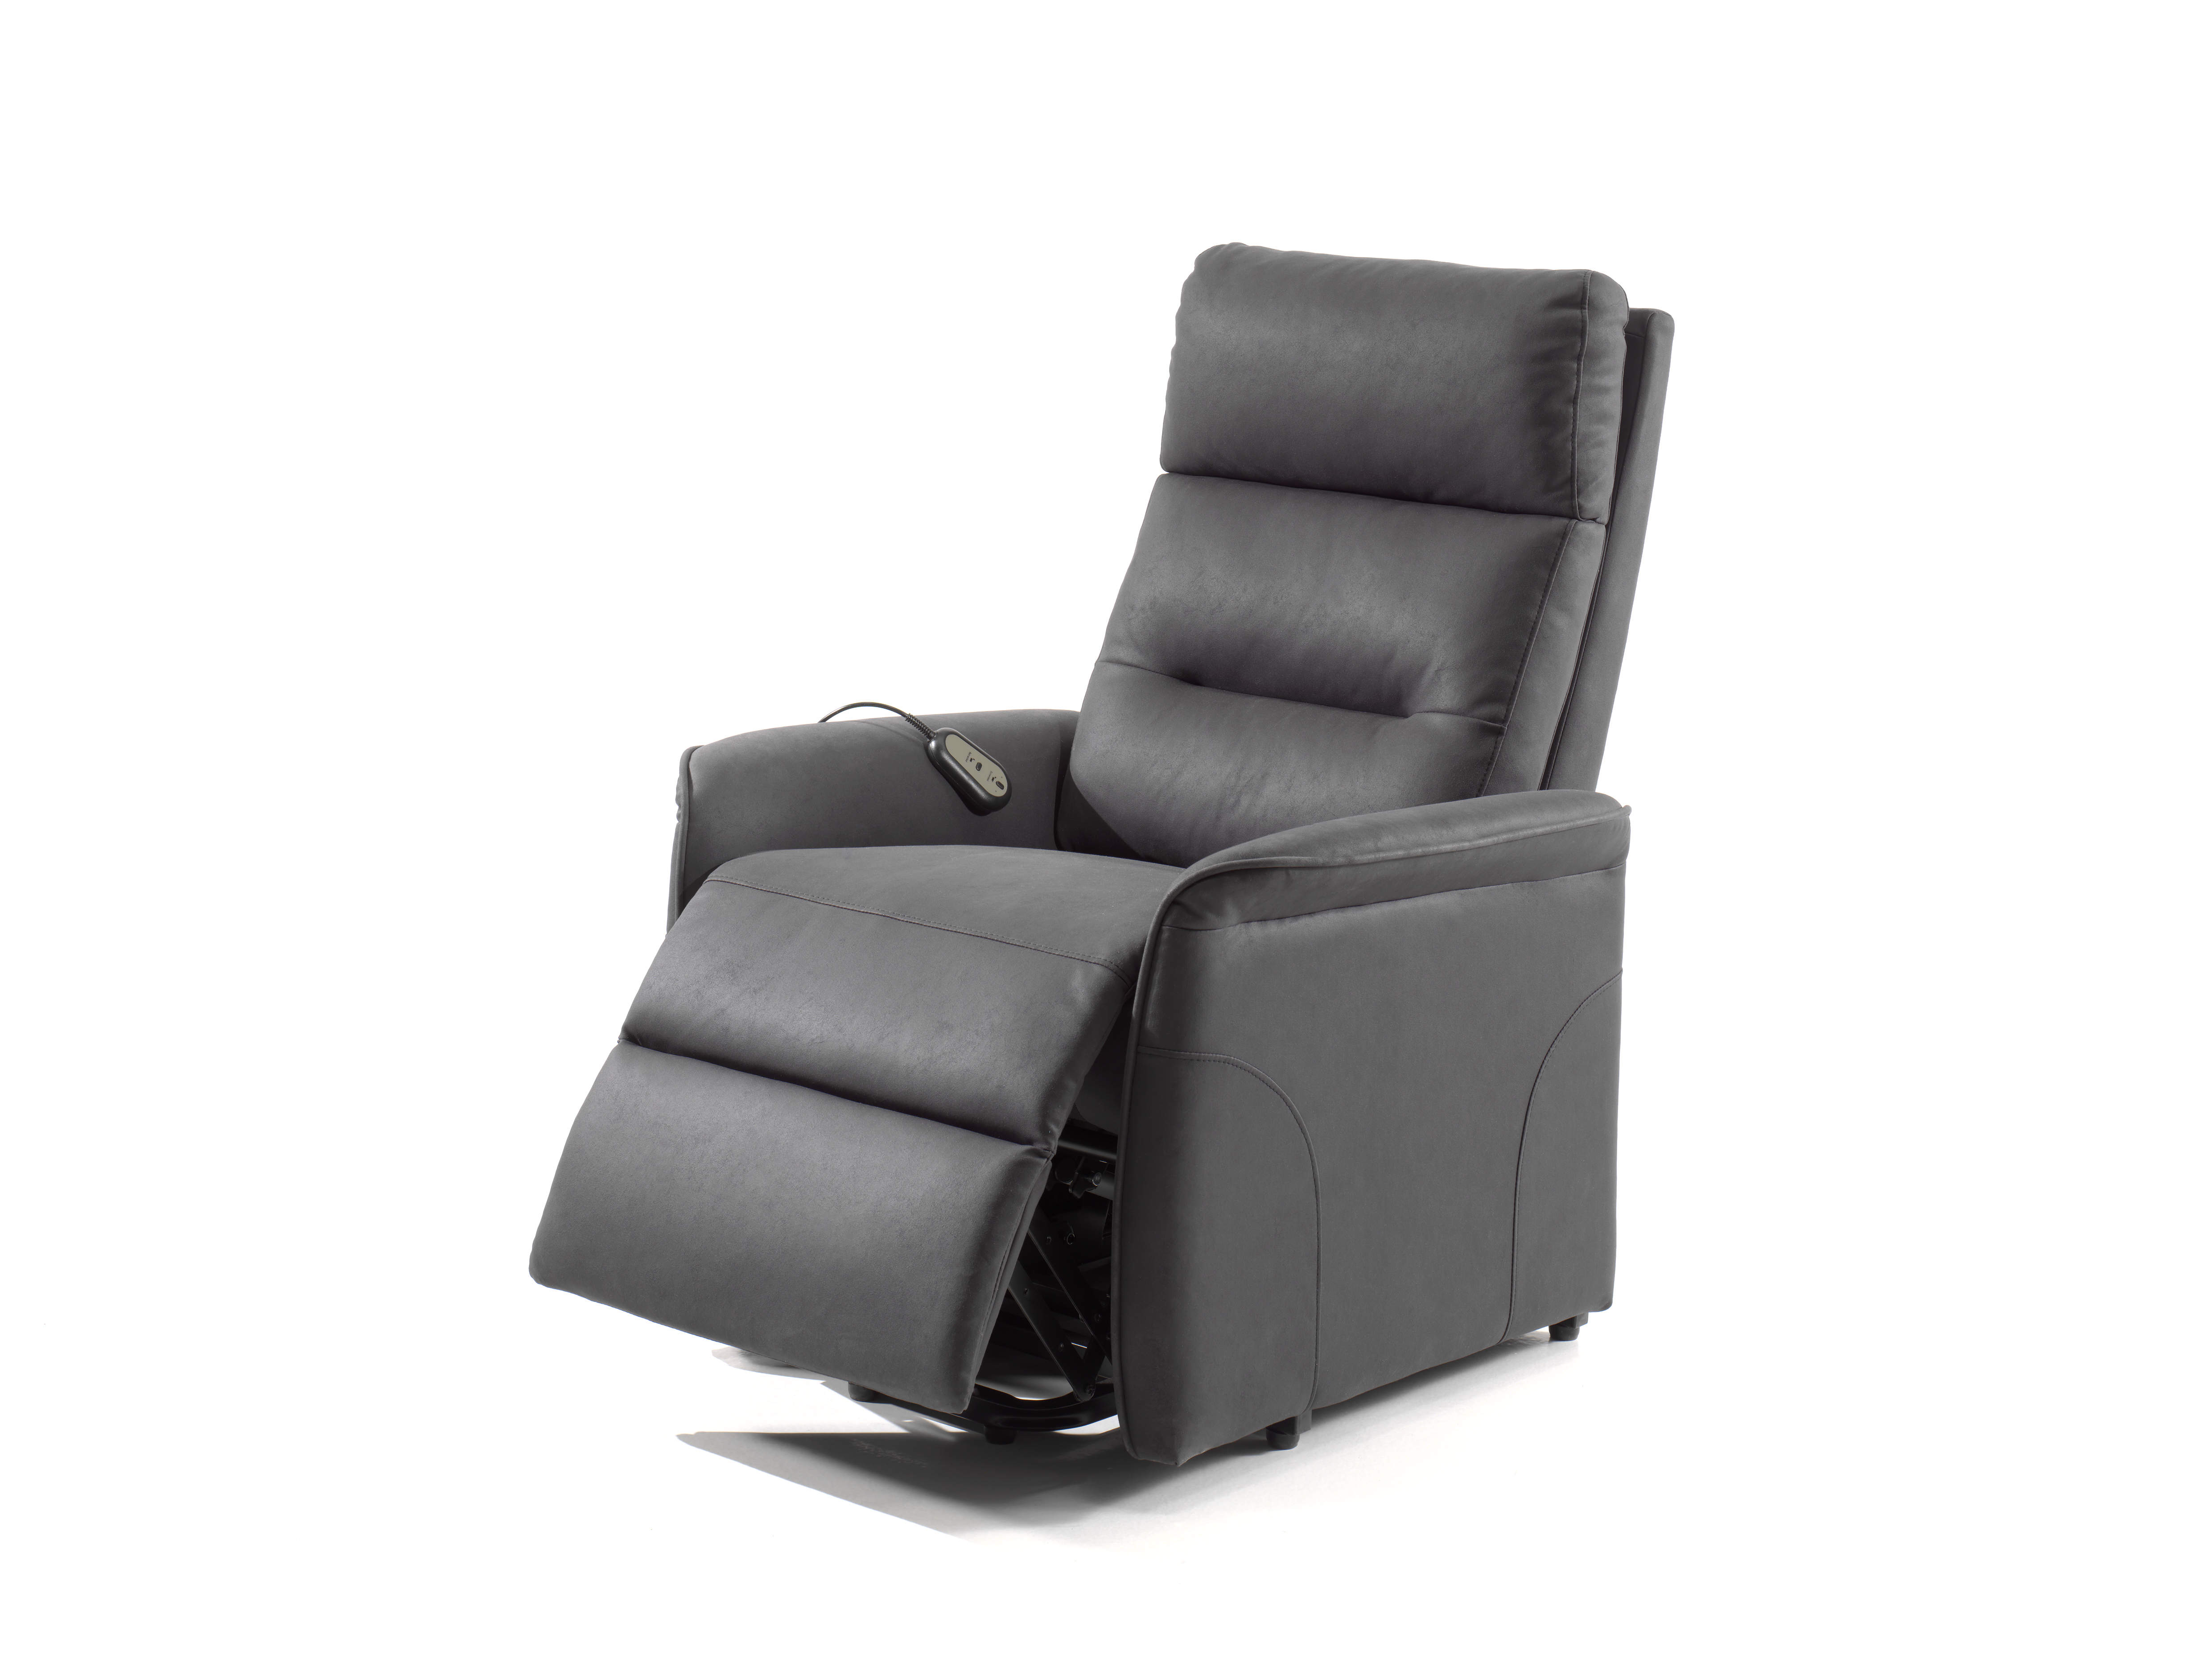 Fauteuil Rolf